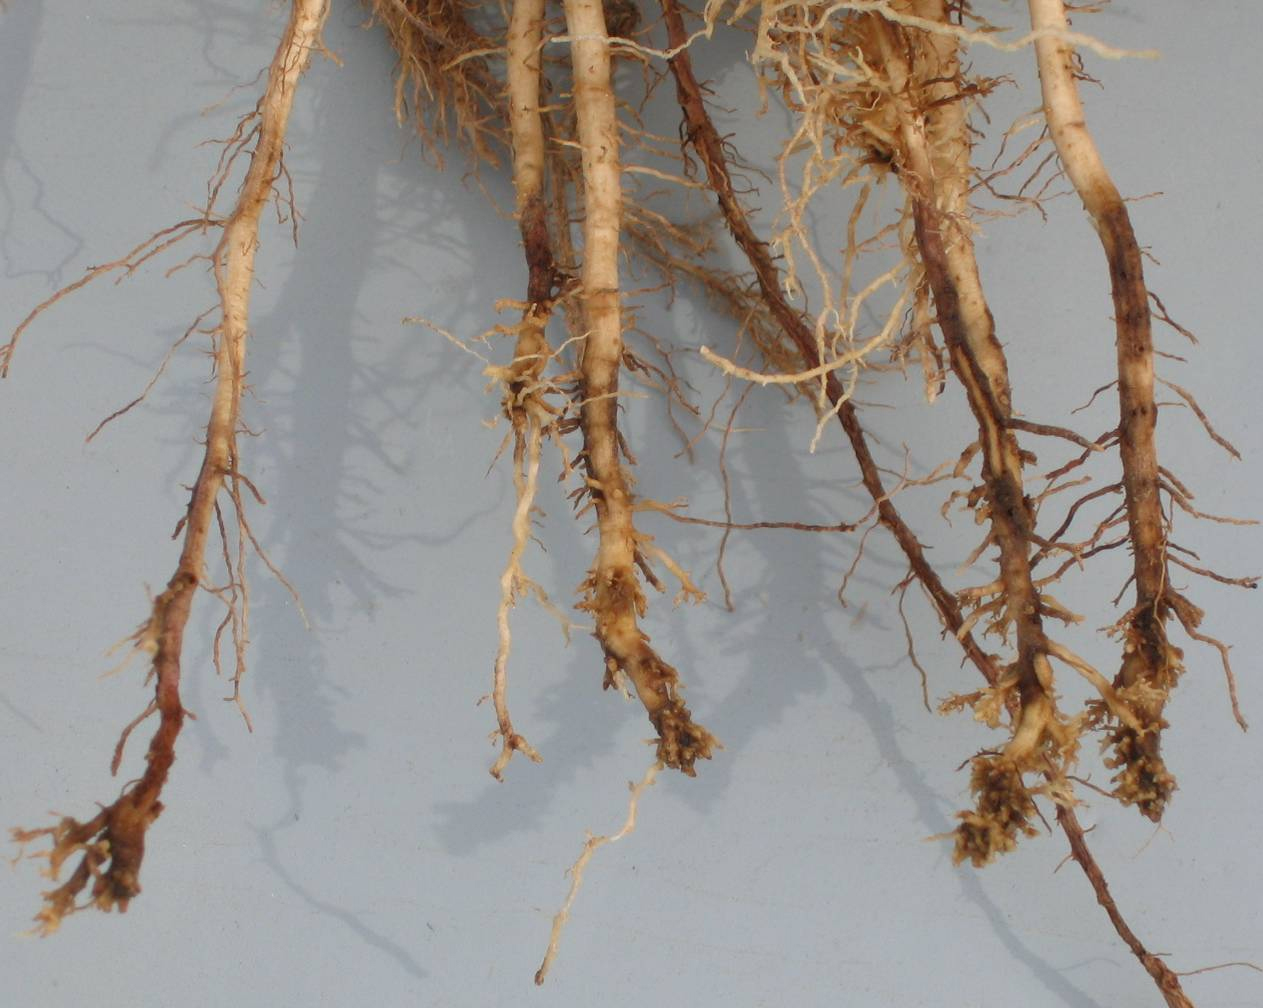 Nematode root injury with probable secondary fungal infections.